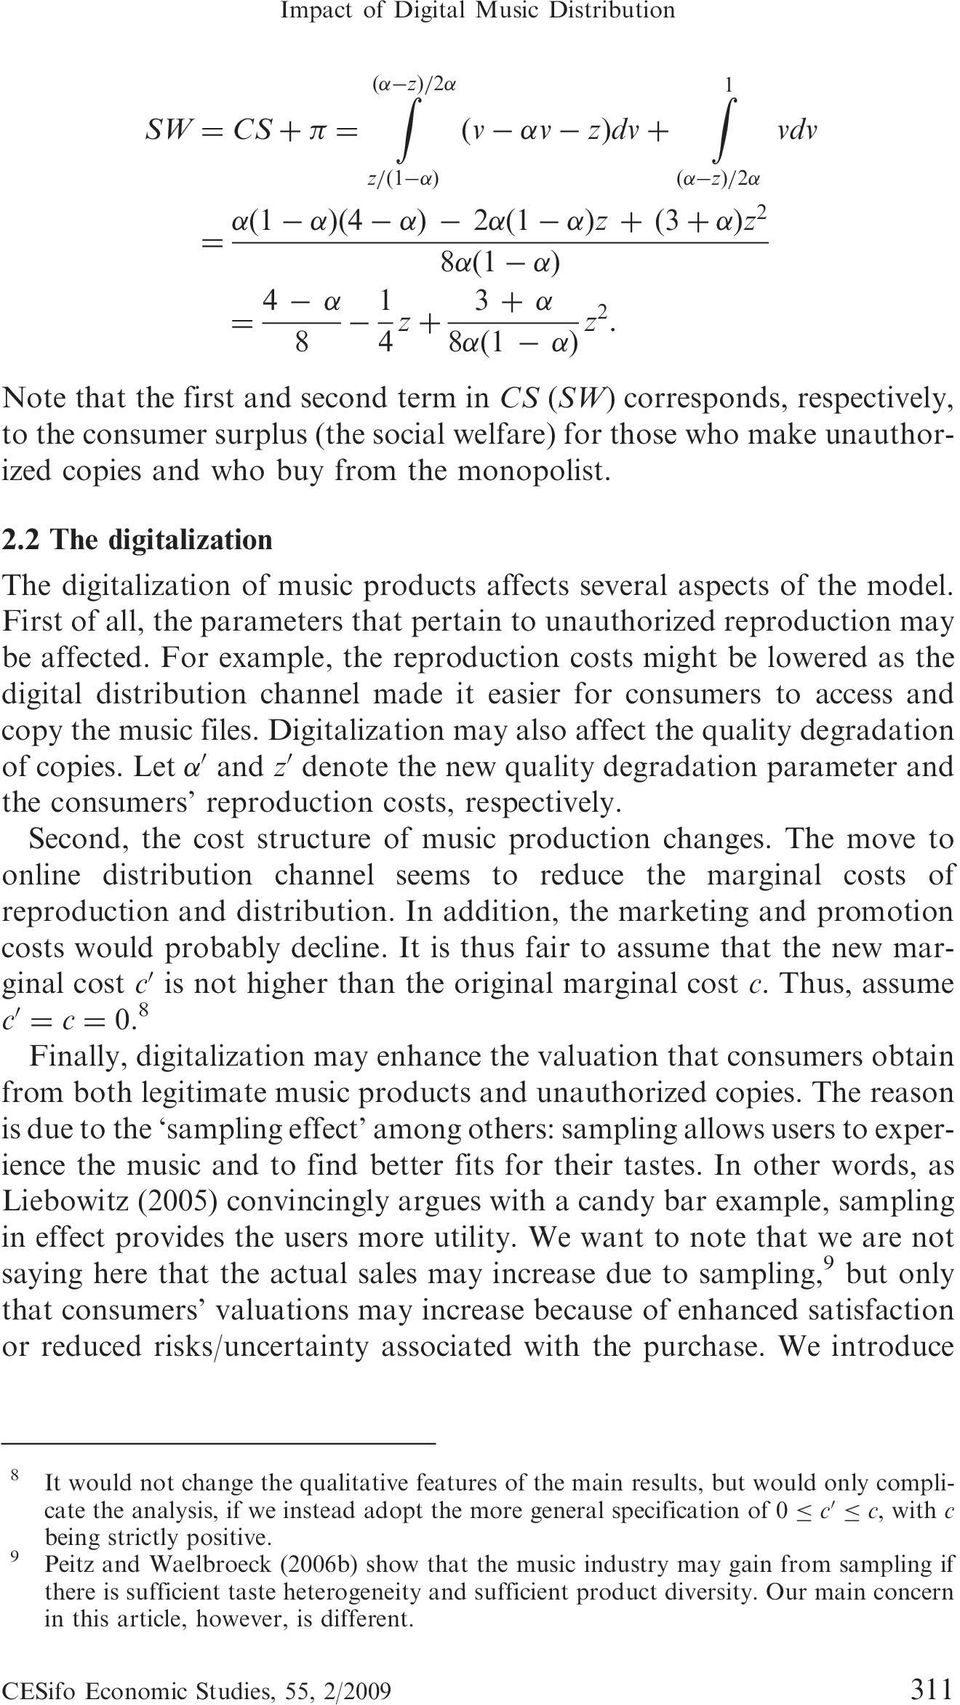 2 The digitalization The digitalization of music products affects several aspects of the model. First of all, the parameters that pertain to unauthorized reproduction may be affected.